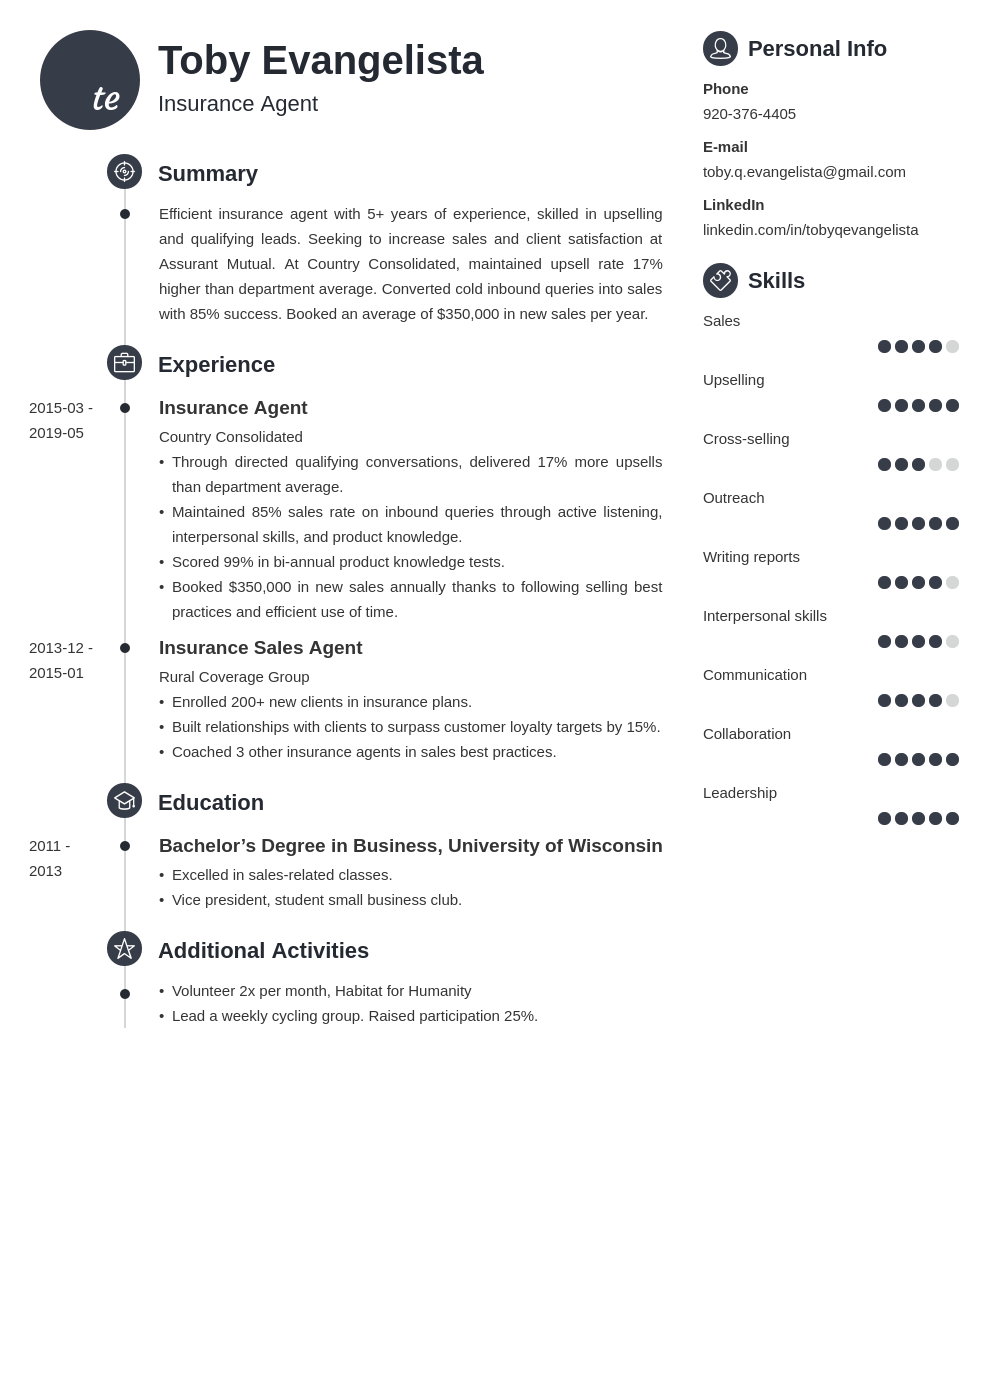 insurance agent resume example template primo | Resume ...